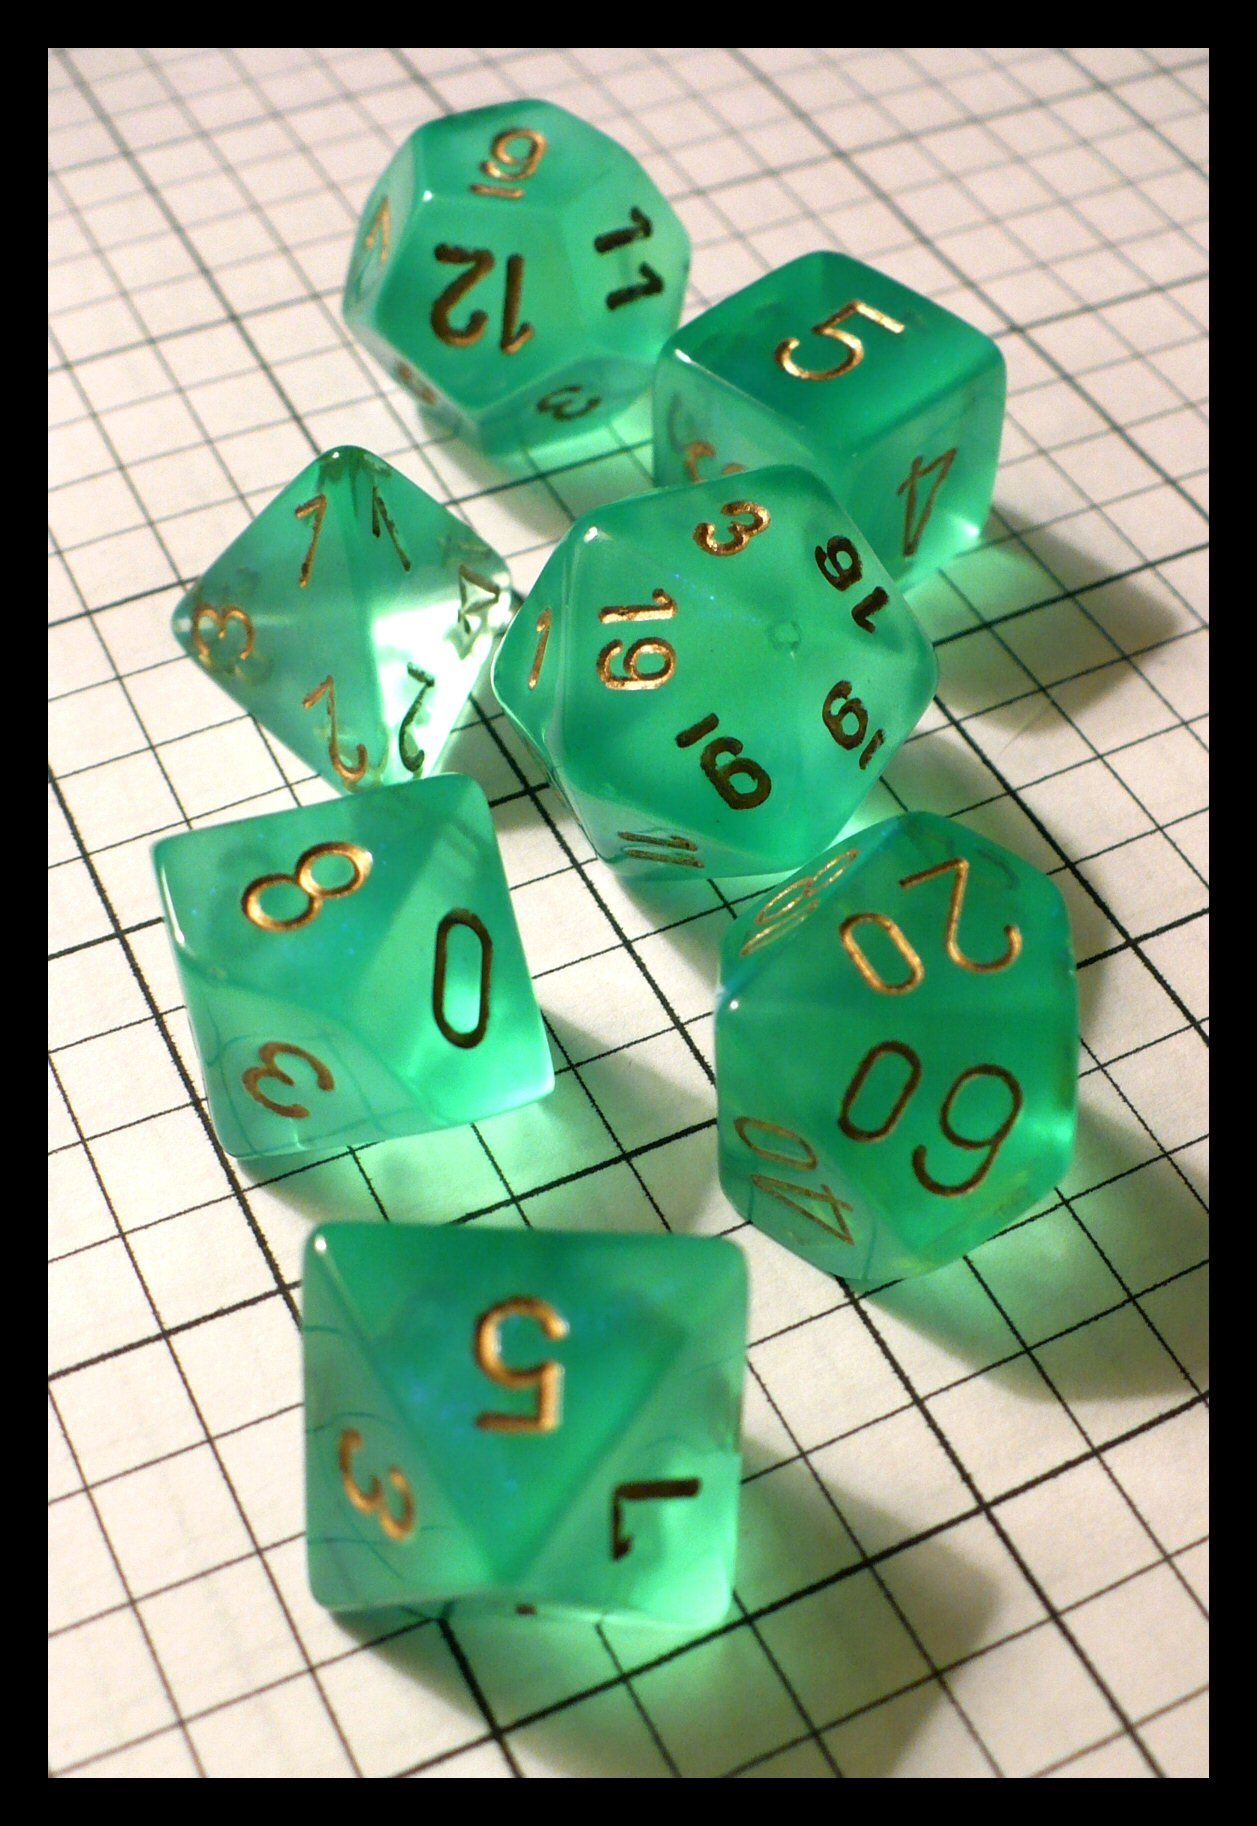 Dice - Dice Sets - Chessex Borealis Light Green with White Gen Con Aug 2009 (Joe Barbercheck's DICE SETS)